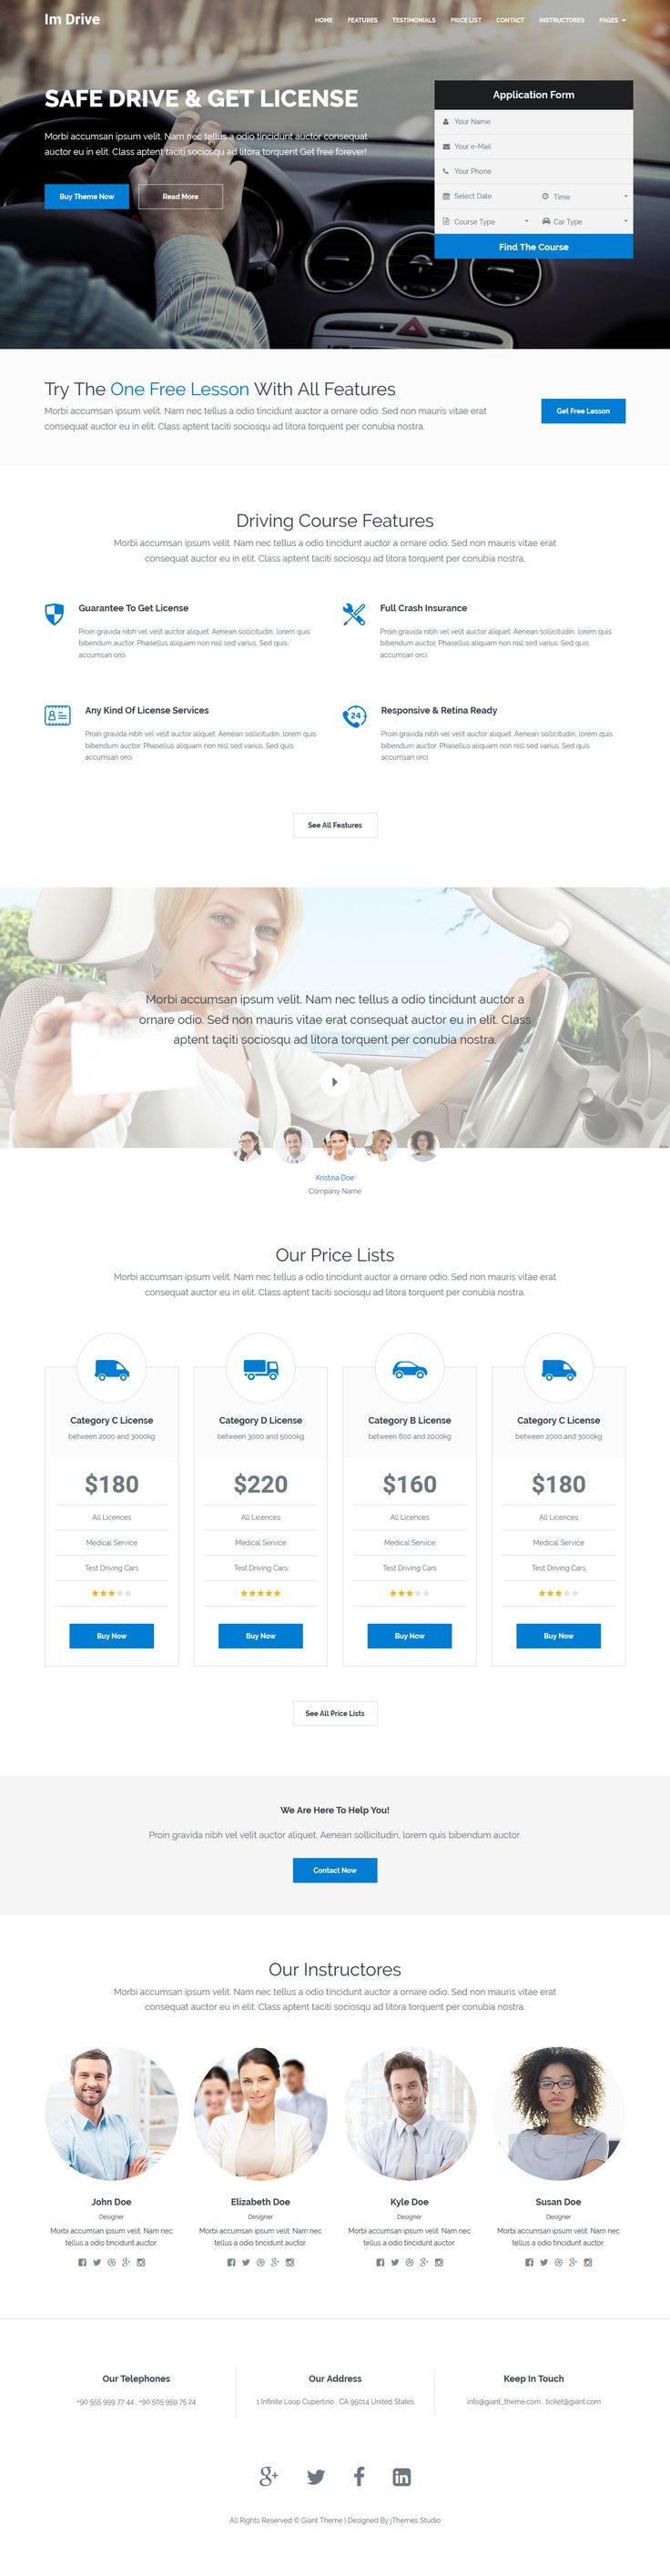 Im-Drive Driving Classes, Courses Landing Page Template. Live Preview & Download: https://themeforest.net/item/imdrive-driving-classes-courses-landing-page-template/16563526?ref=ksioks